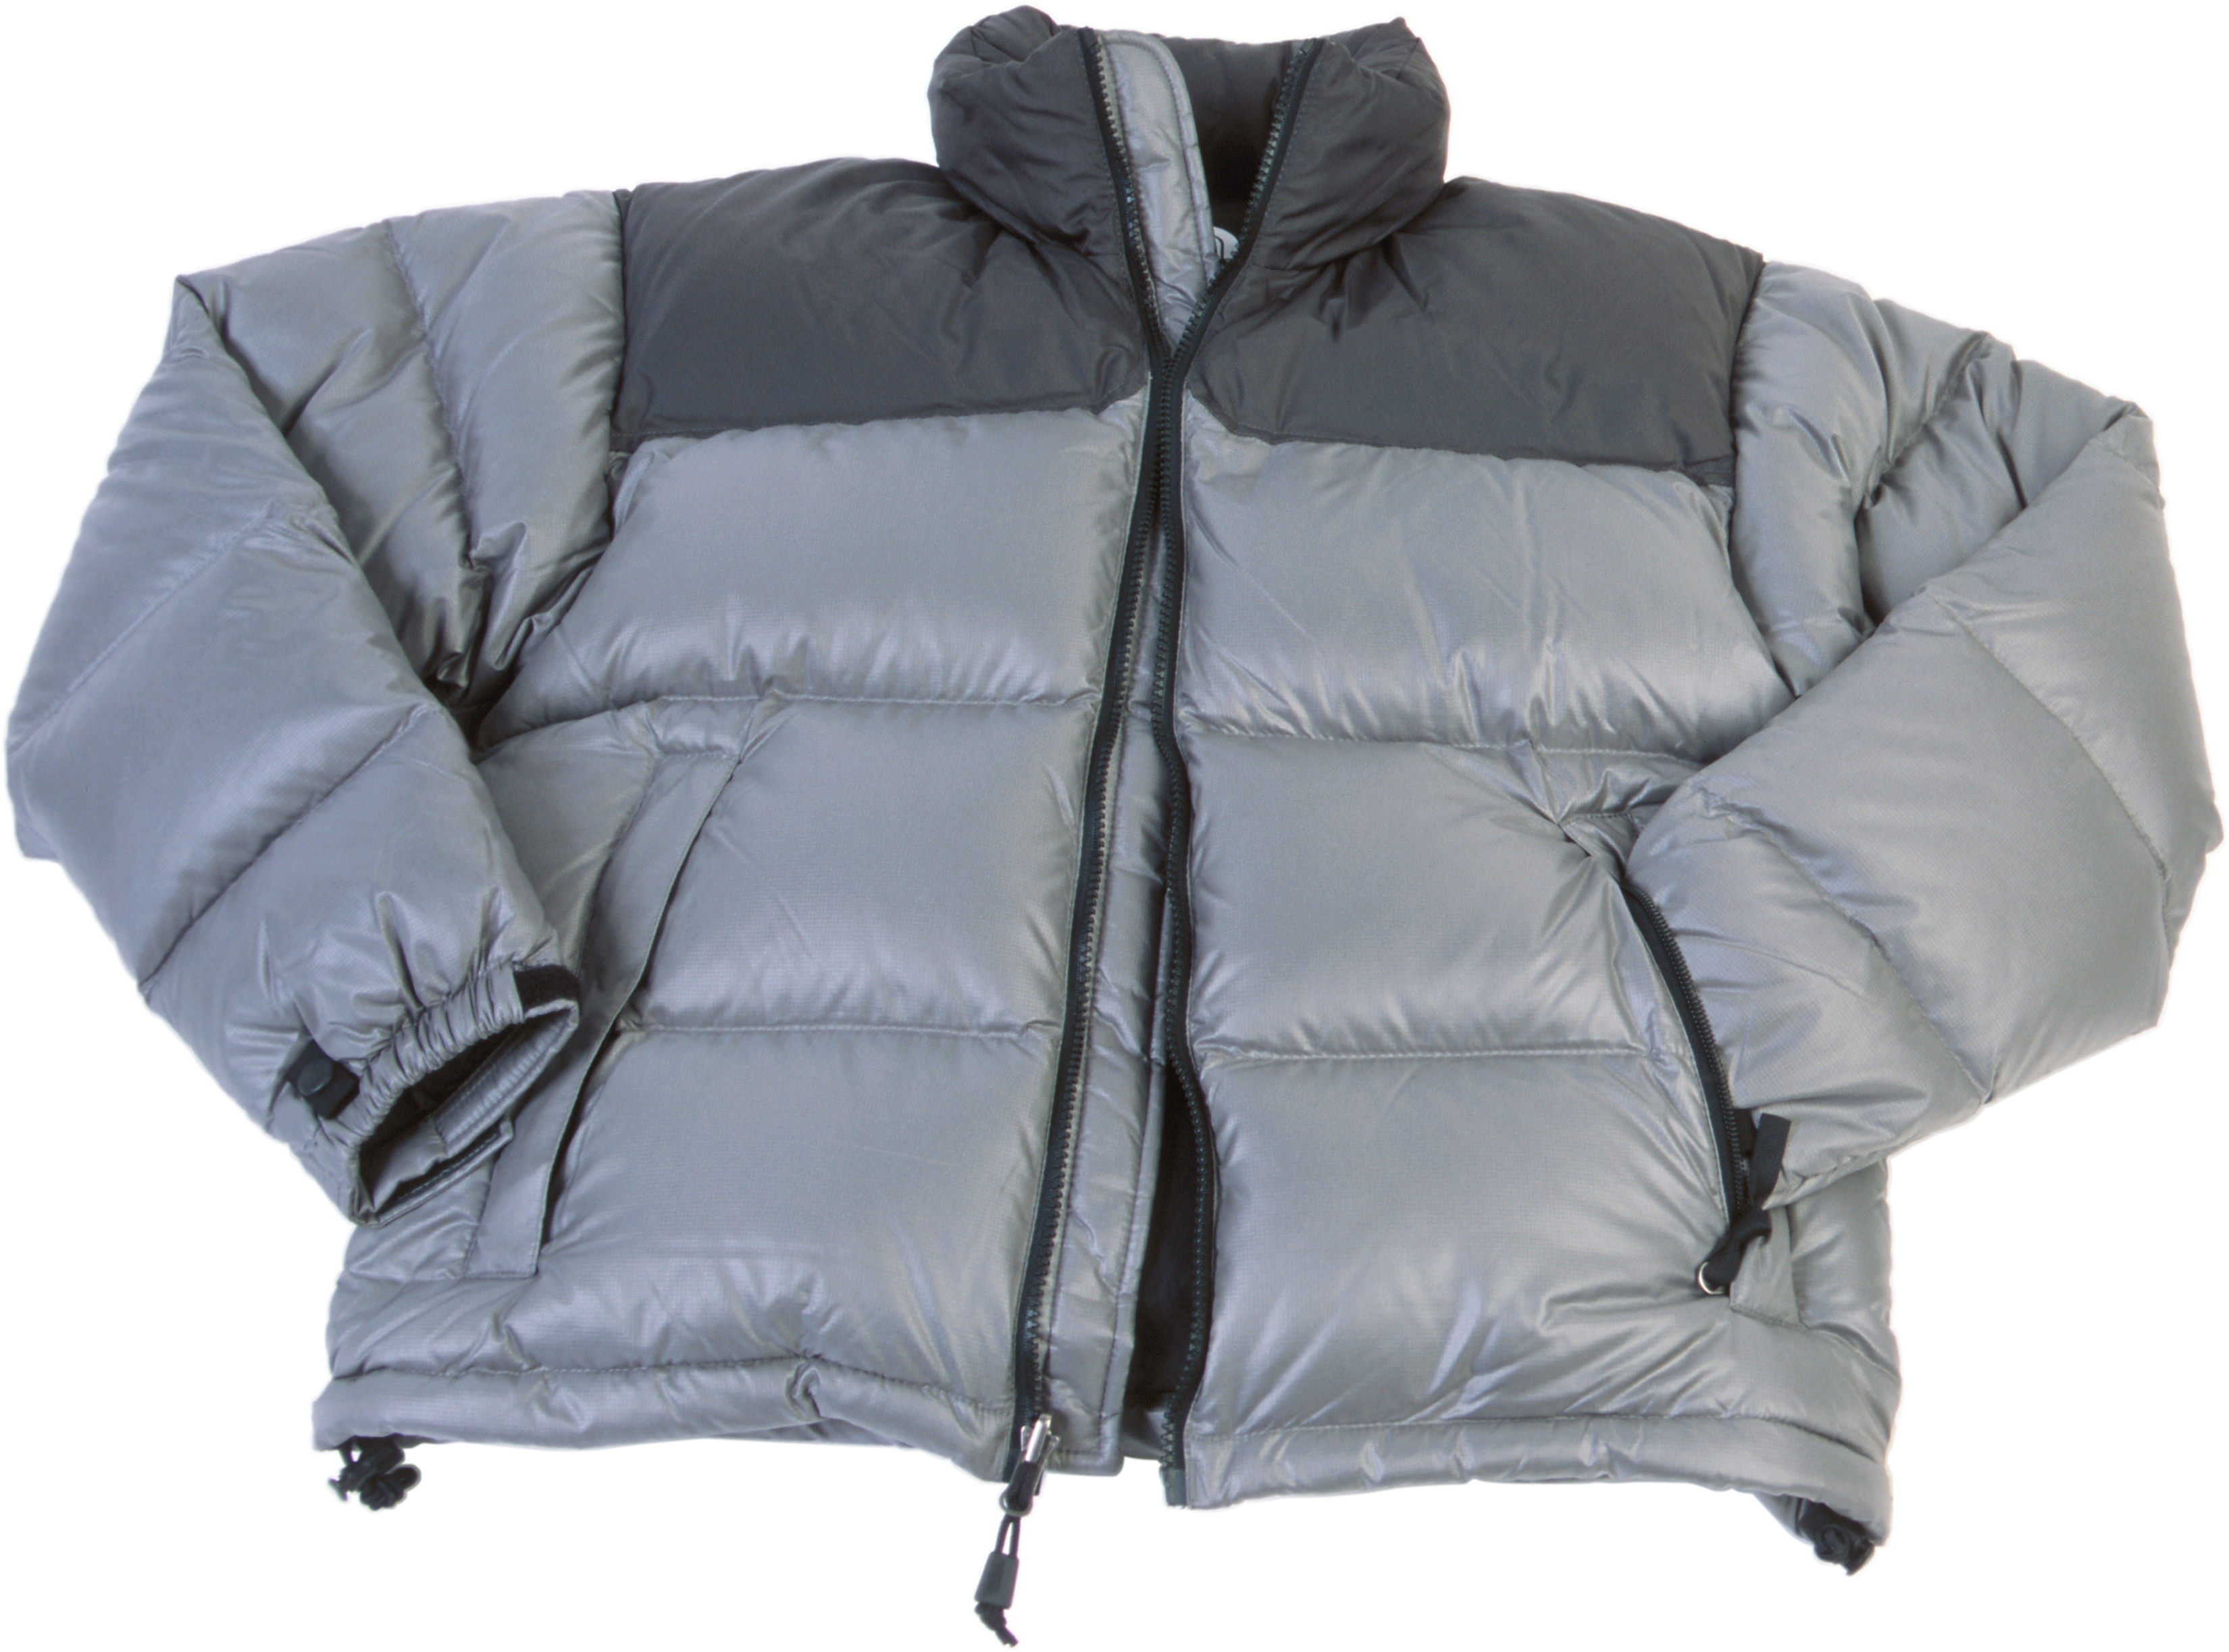 How to peel a down jacket without erasing How to clean the down jacket from shine